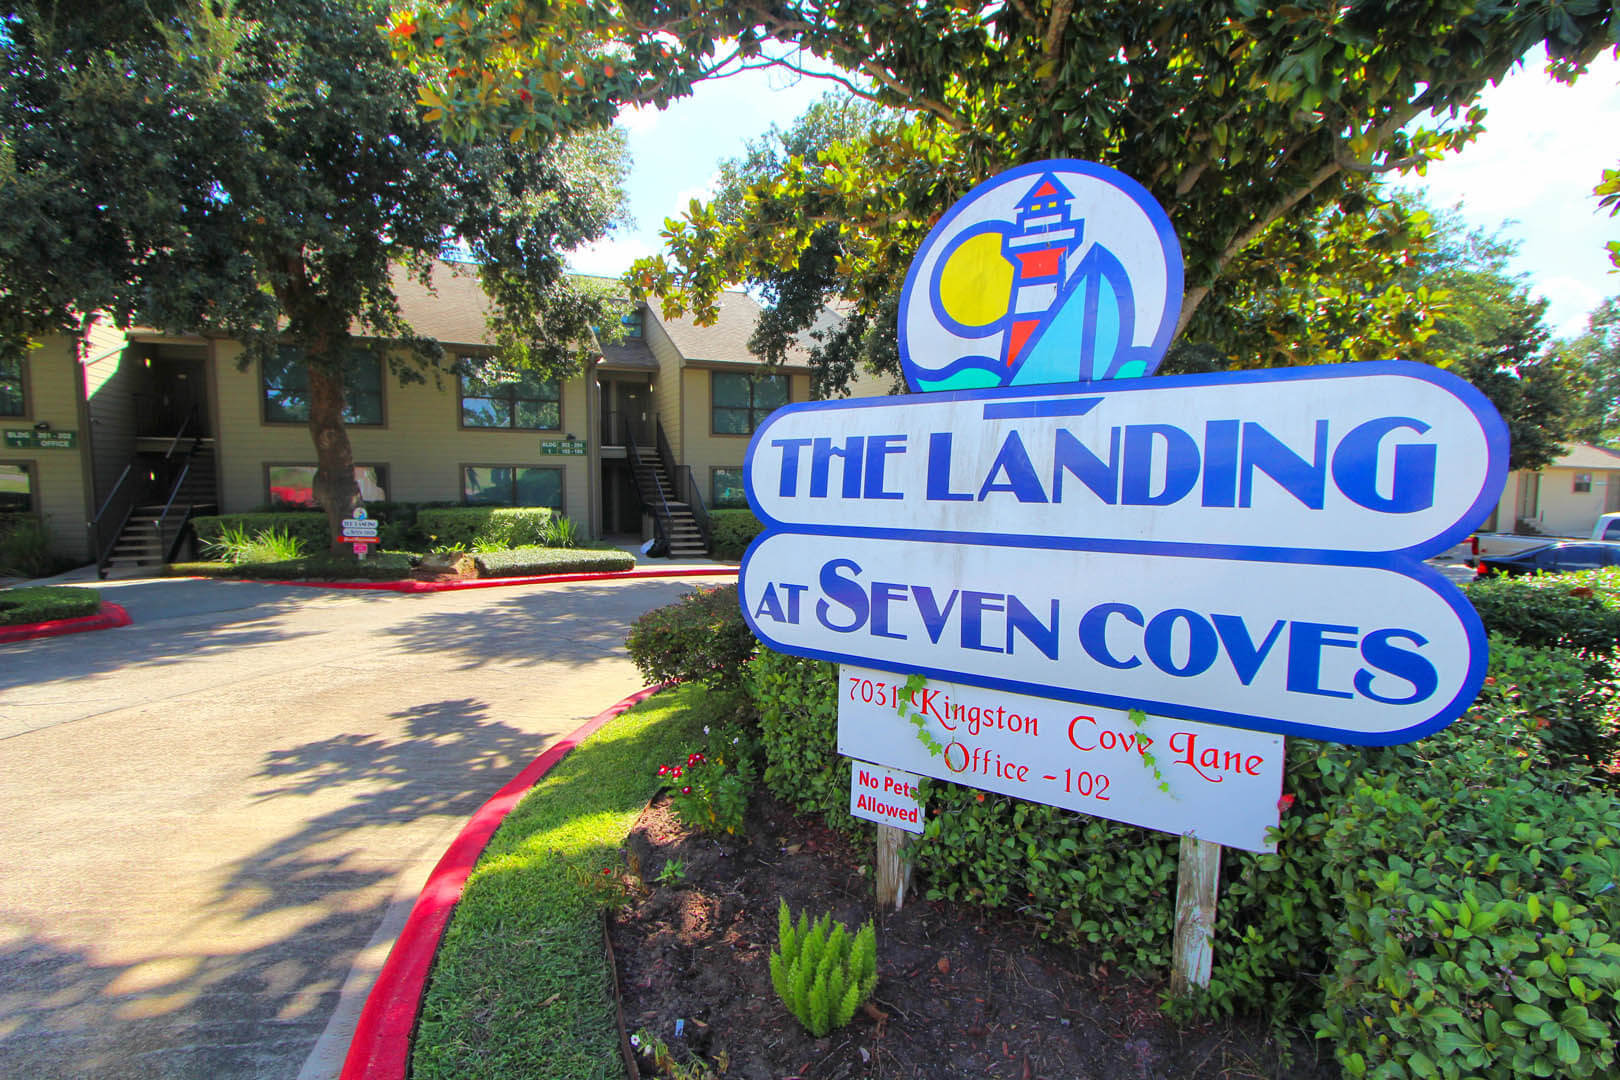 The Landing At Seven Coves Signage